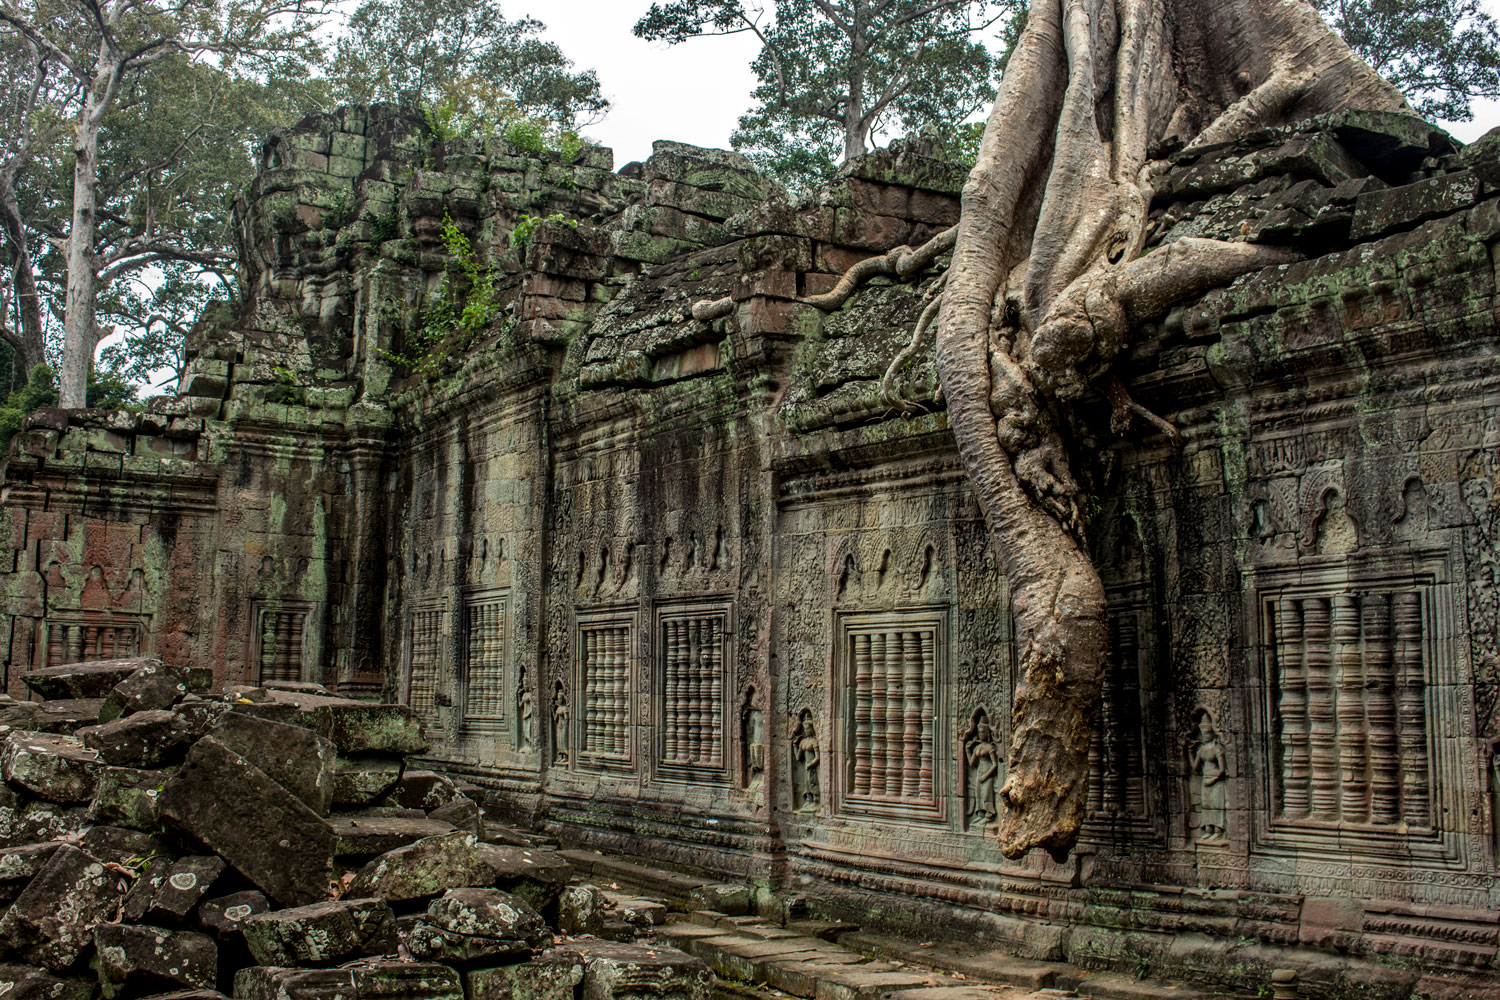 The Forest and Temple Mix at Preah Khan